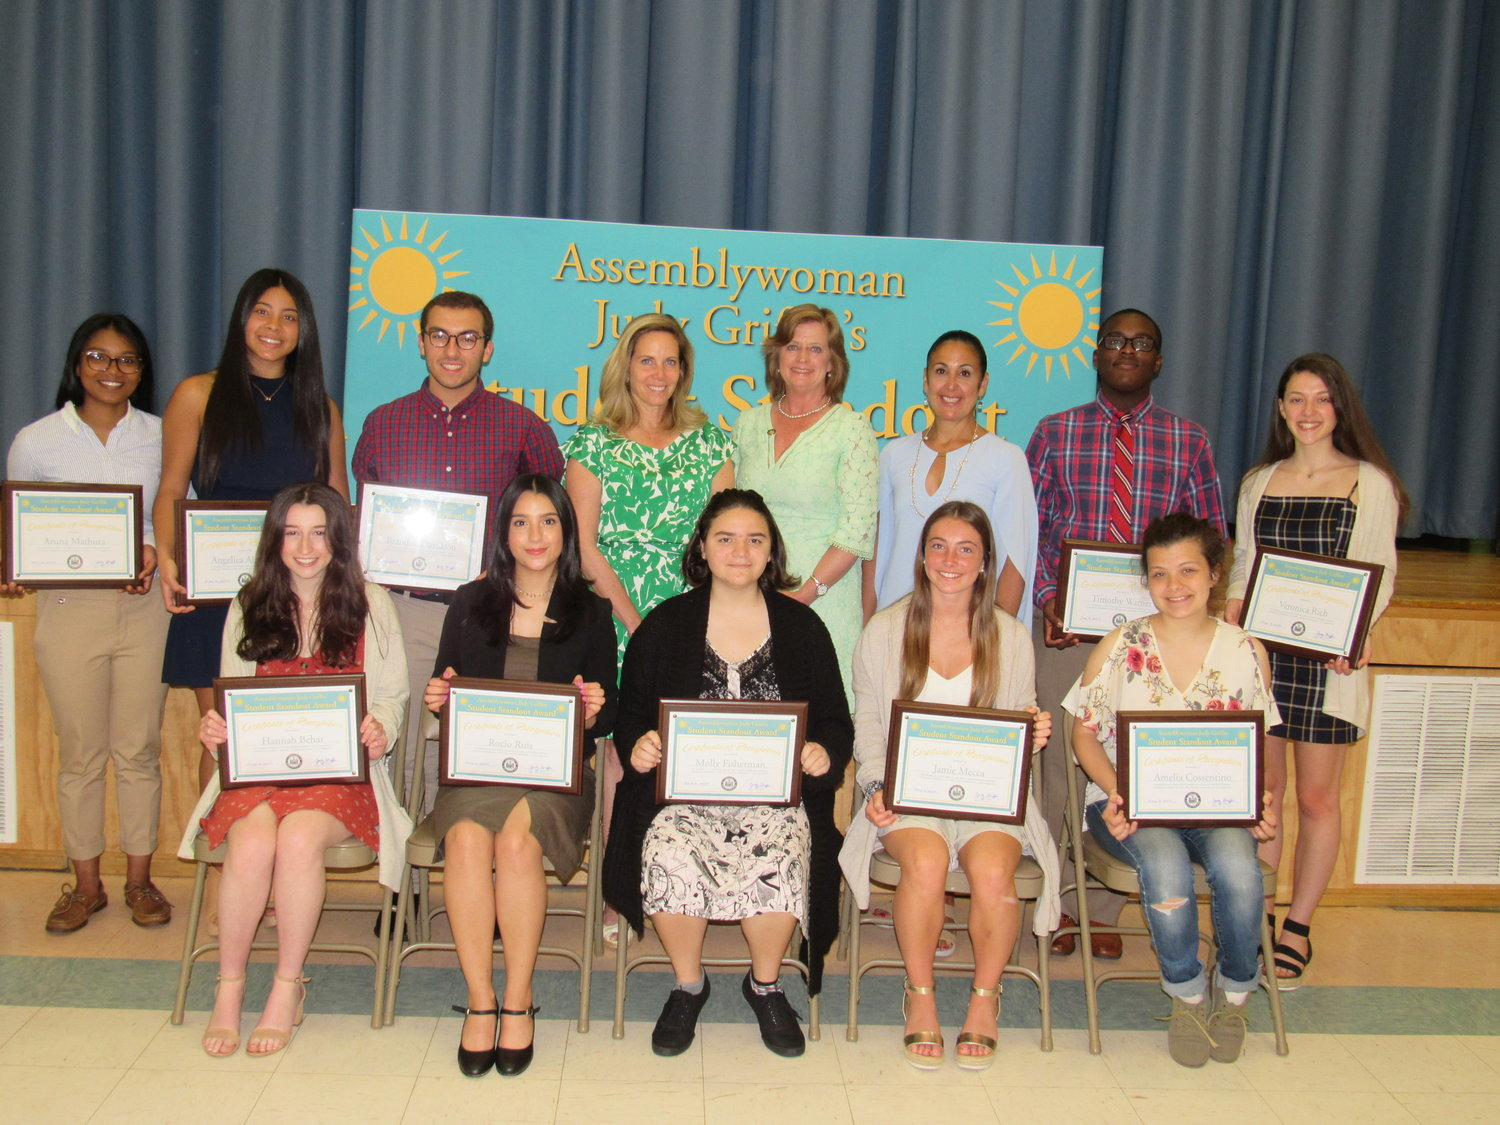 Town Supervisor Laura Gillen, fourth from top left, joined State Assemblywoman Judy Griffin for her inaugural Student Standout Awards ceremony on June 2.